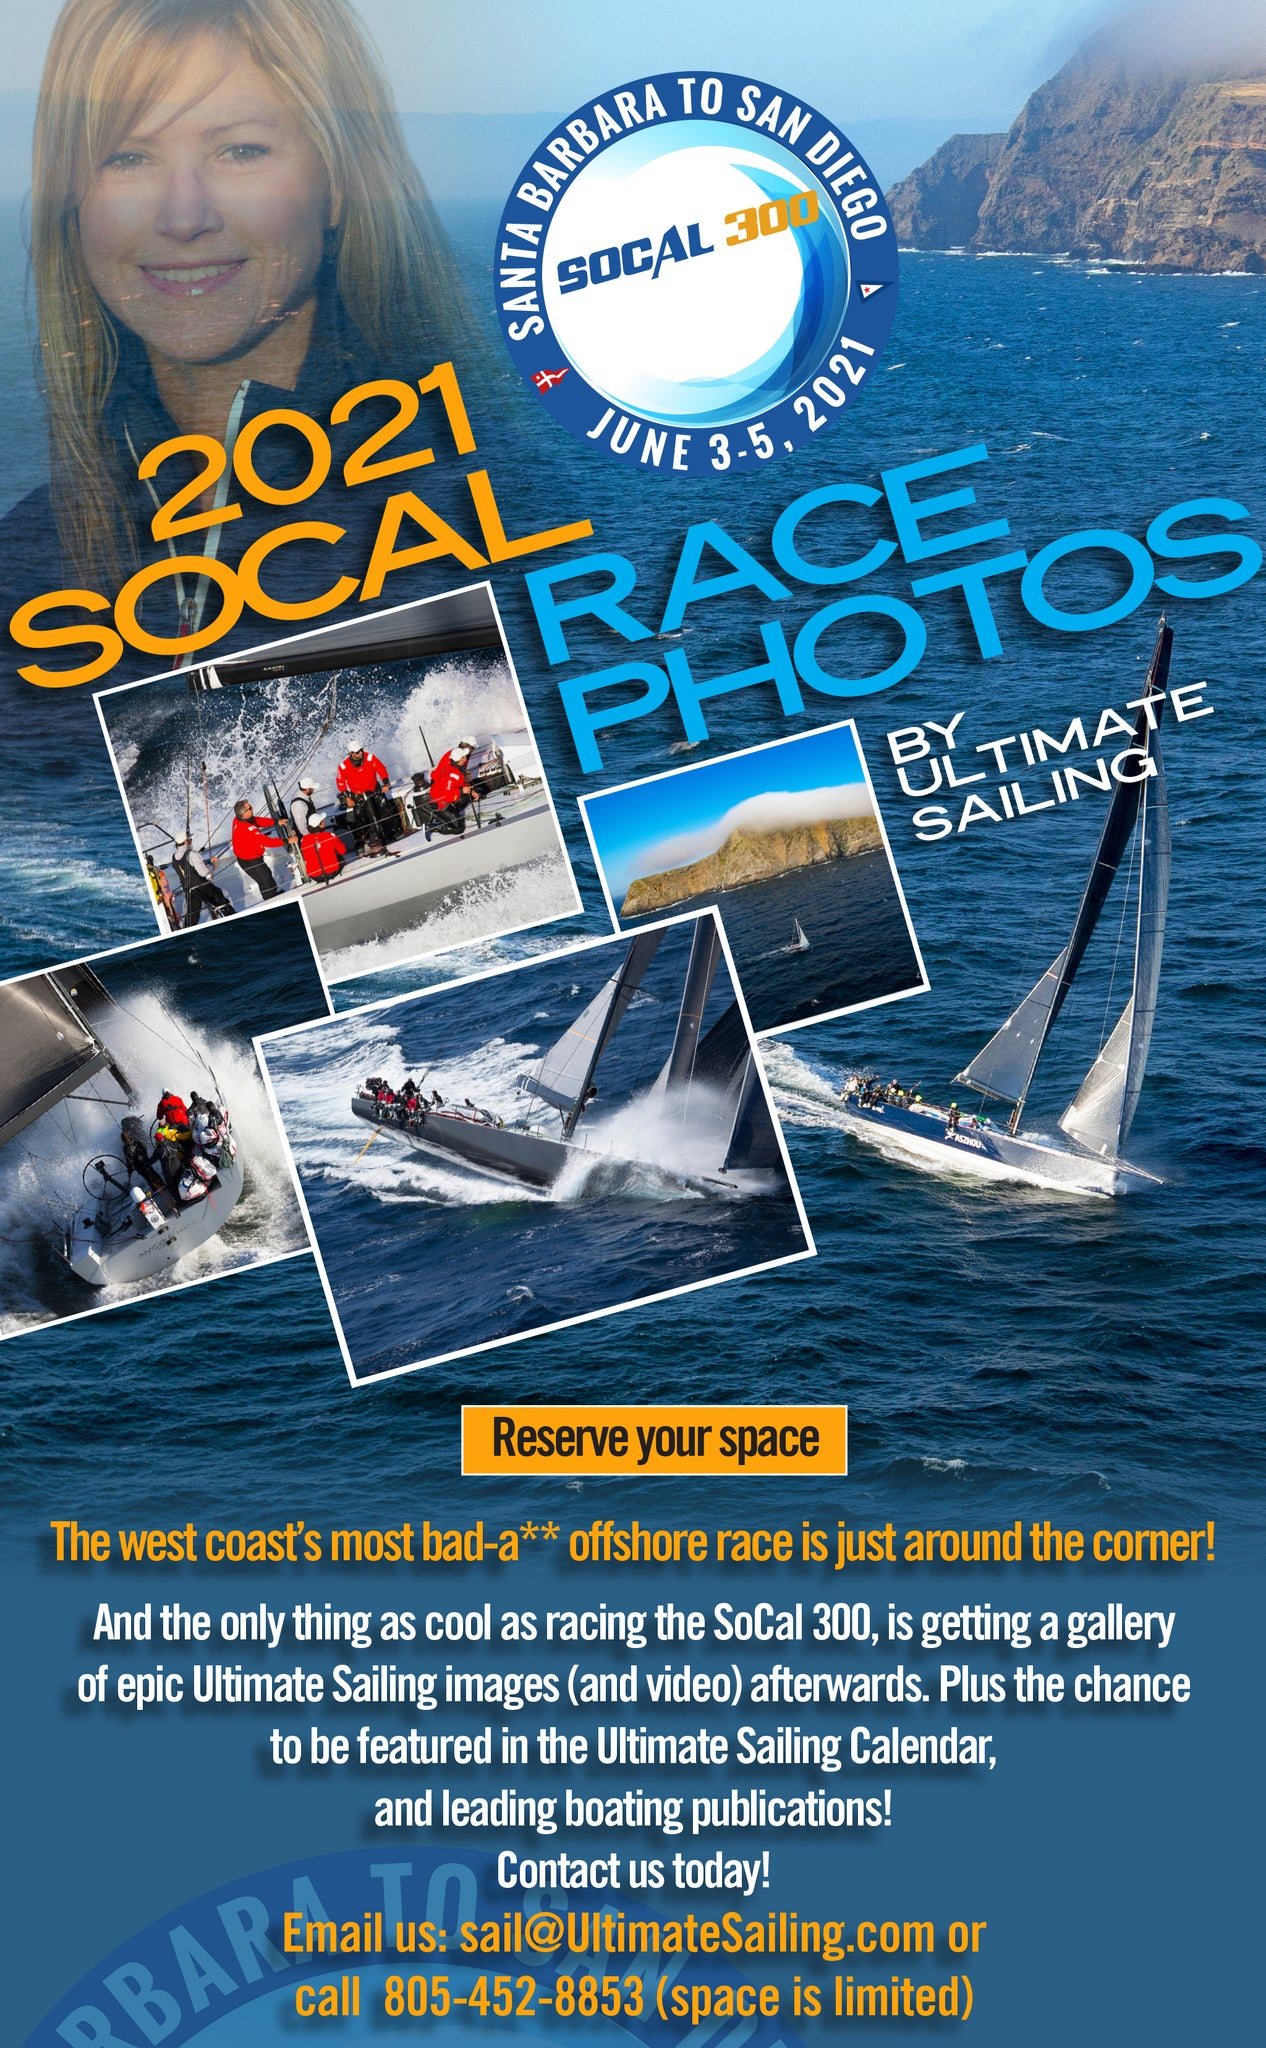 Ultimate Sailing Photo Coverage of SoCal 2021